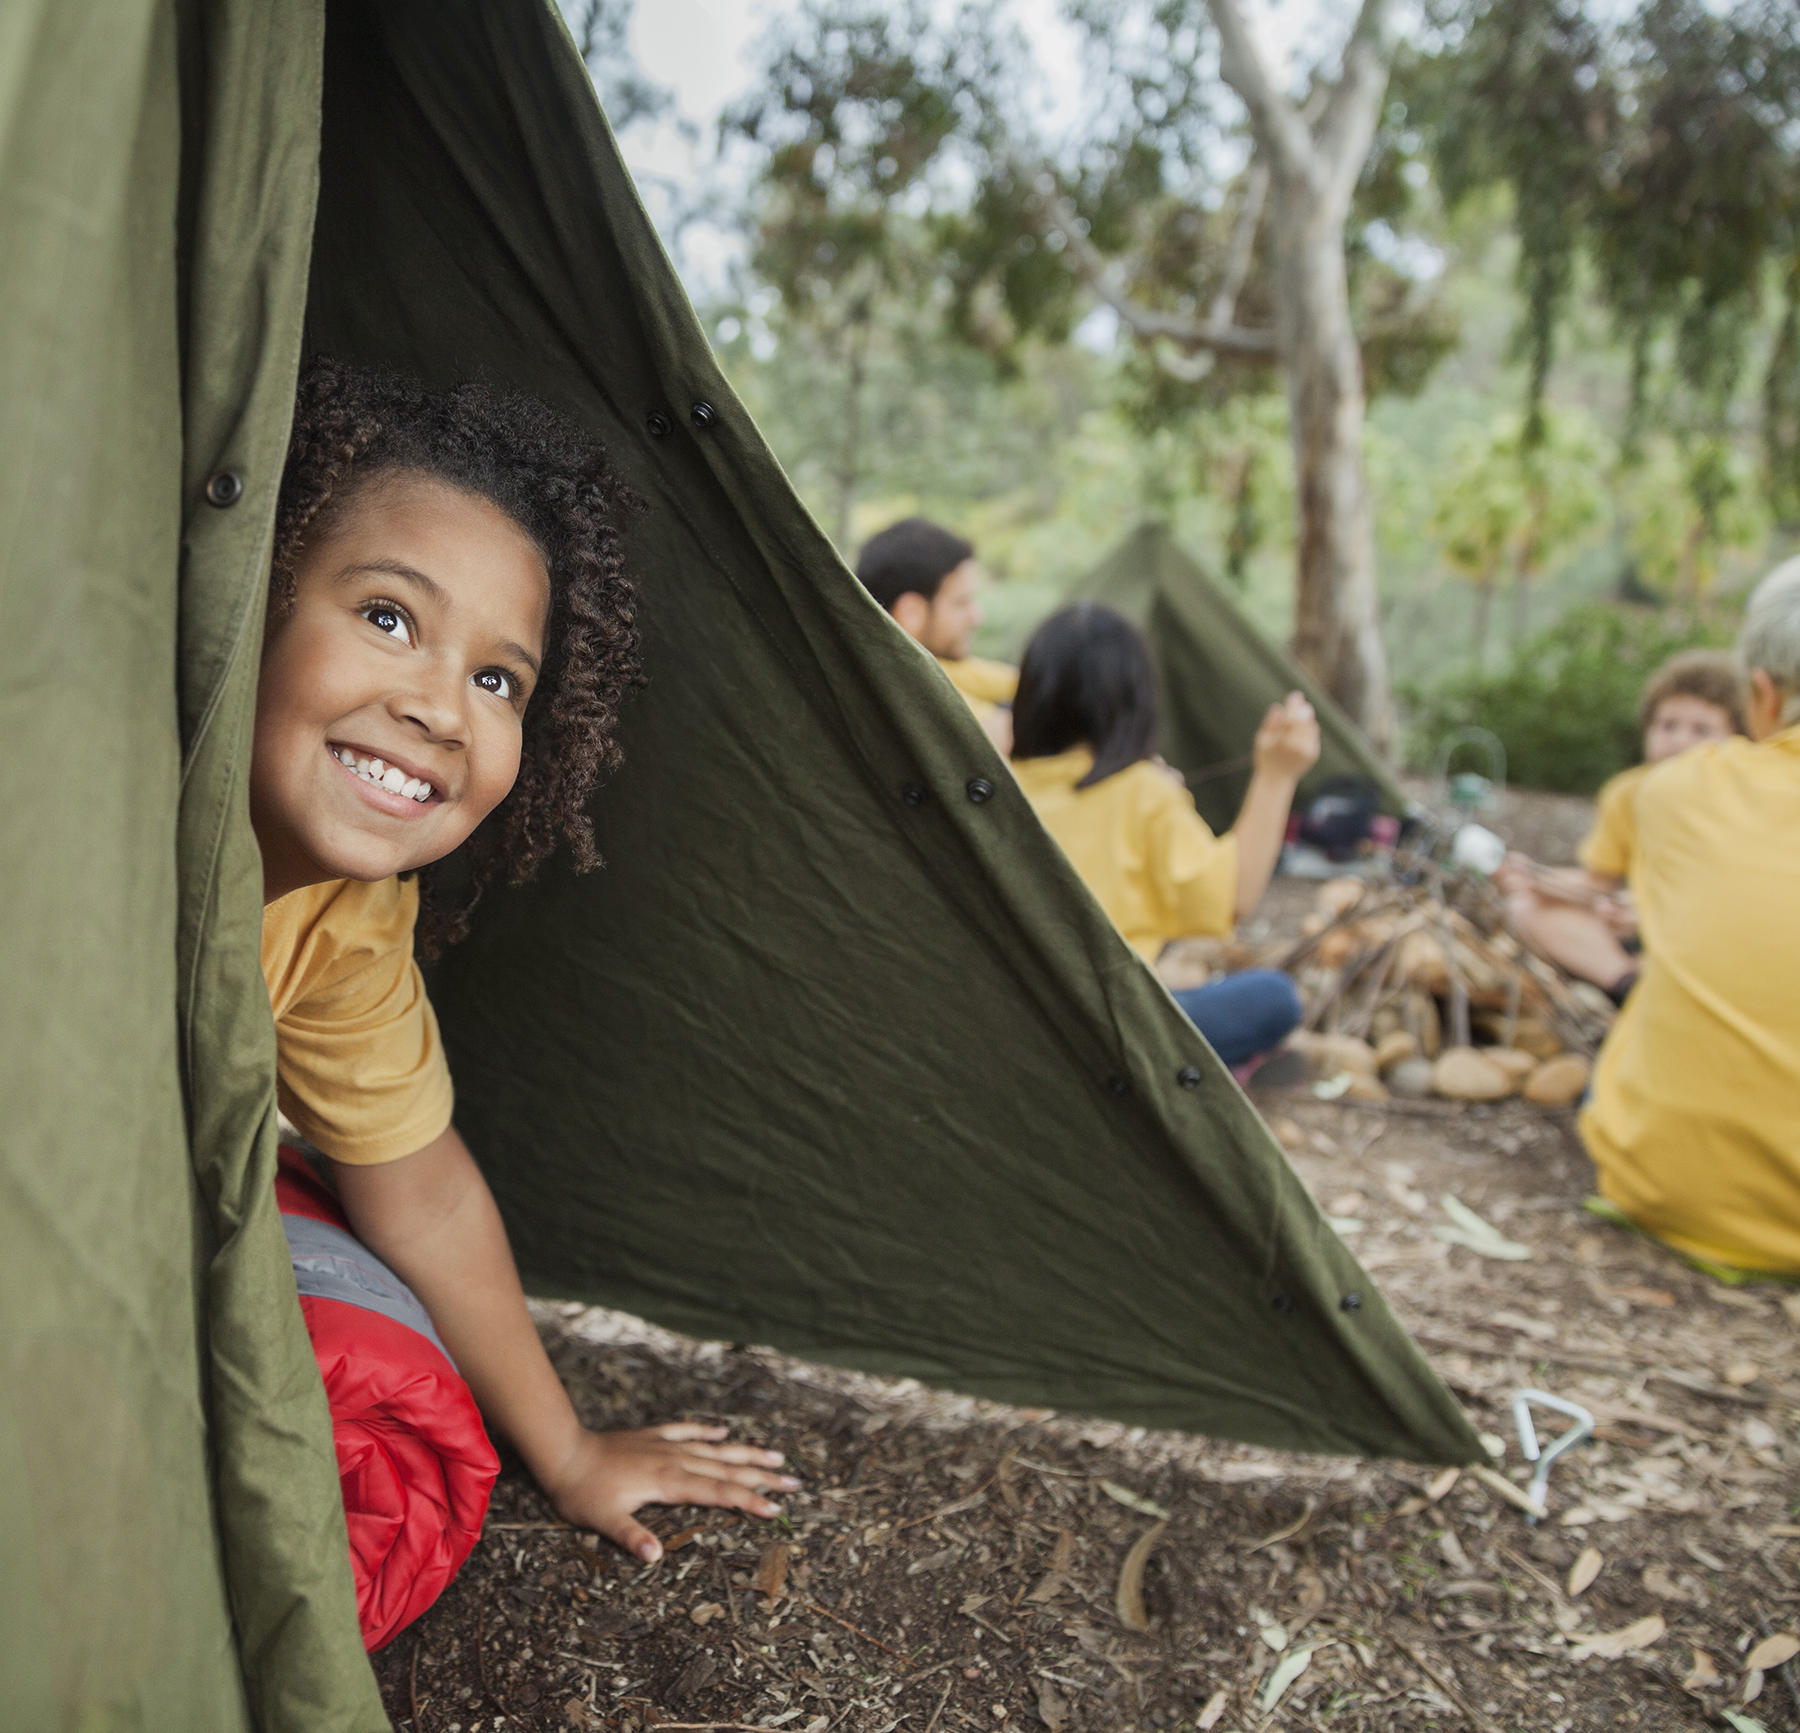 Girl in Tent at Summer Camp